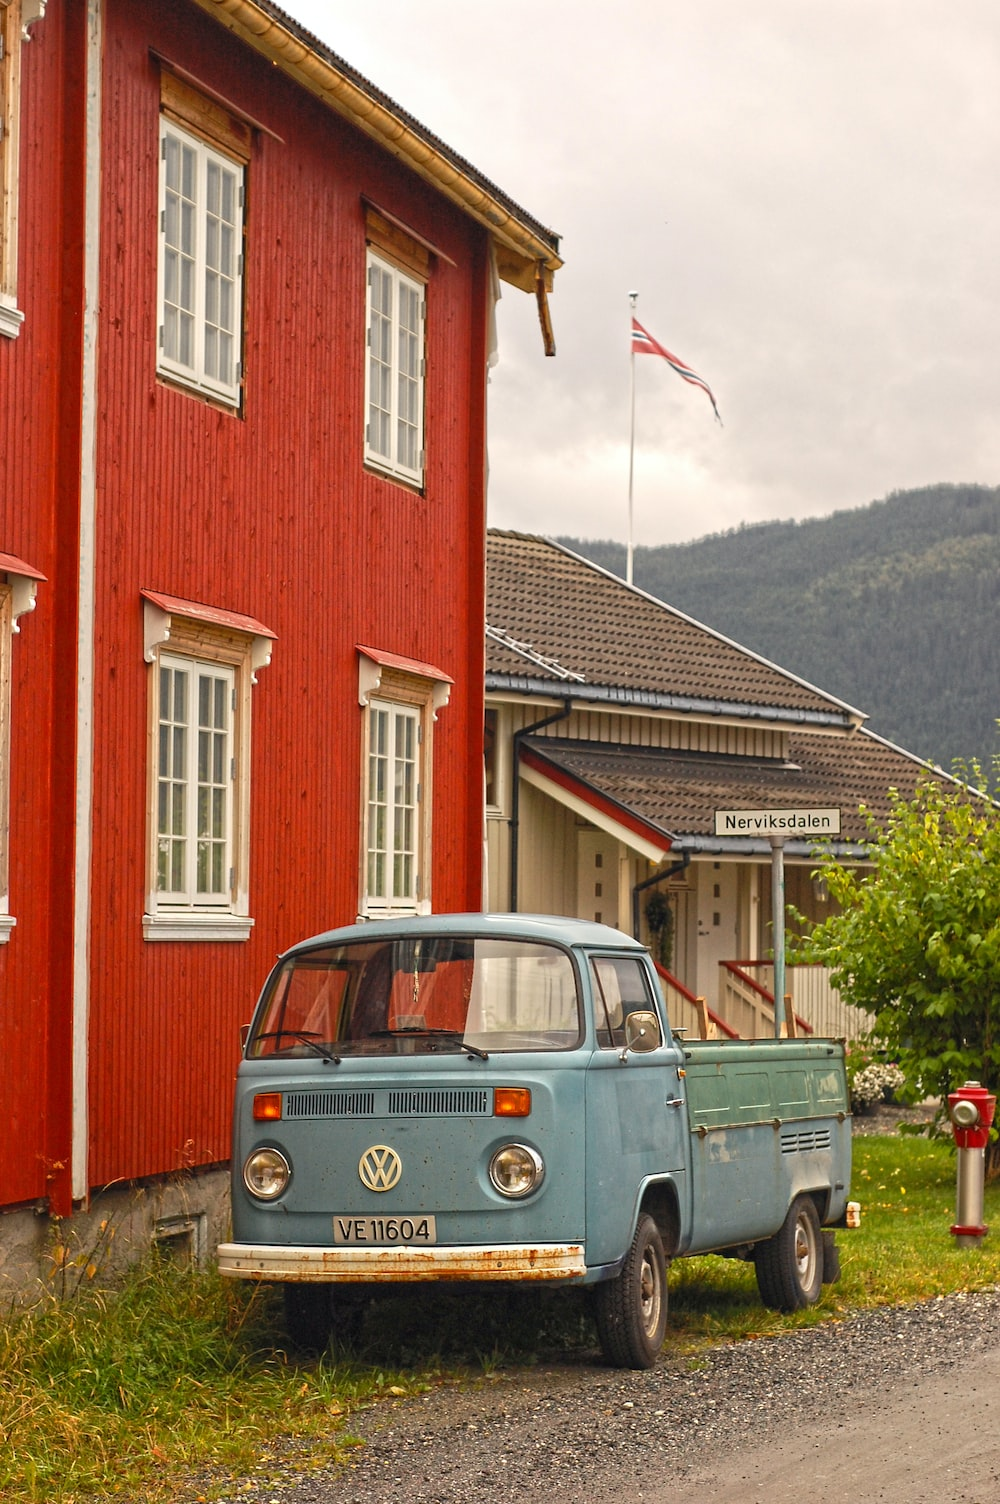 blue Volkswagen truck parked beside red structure